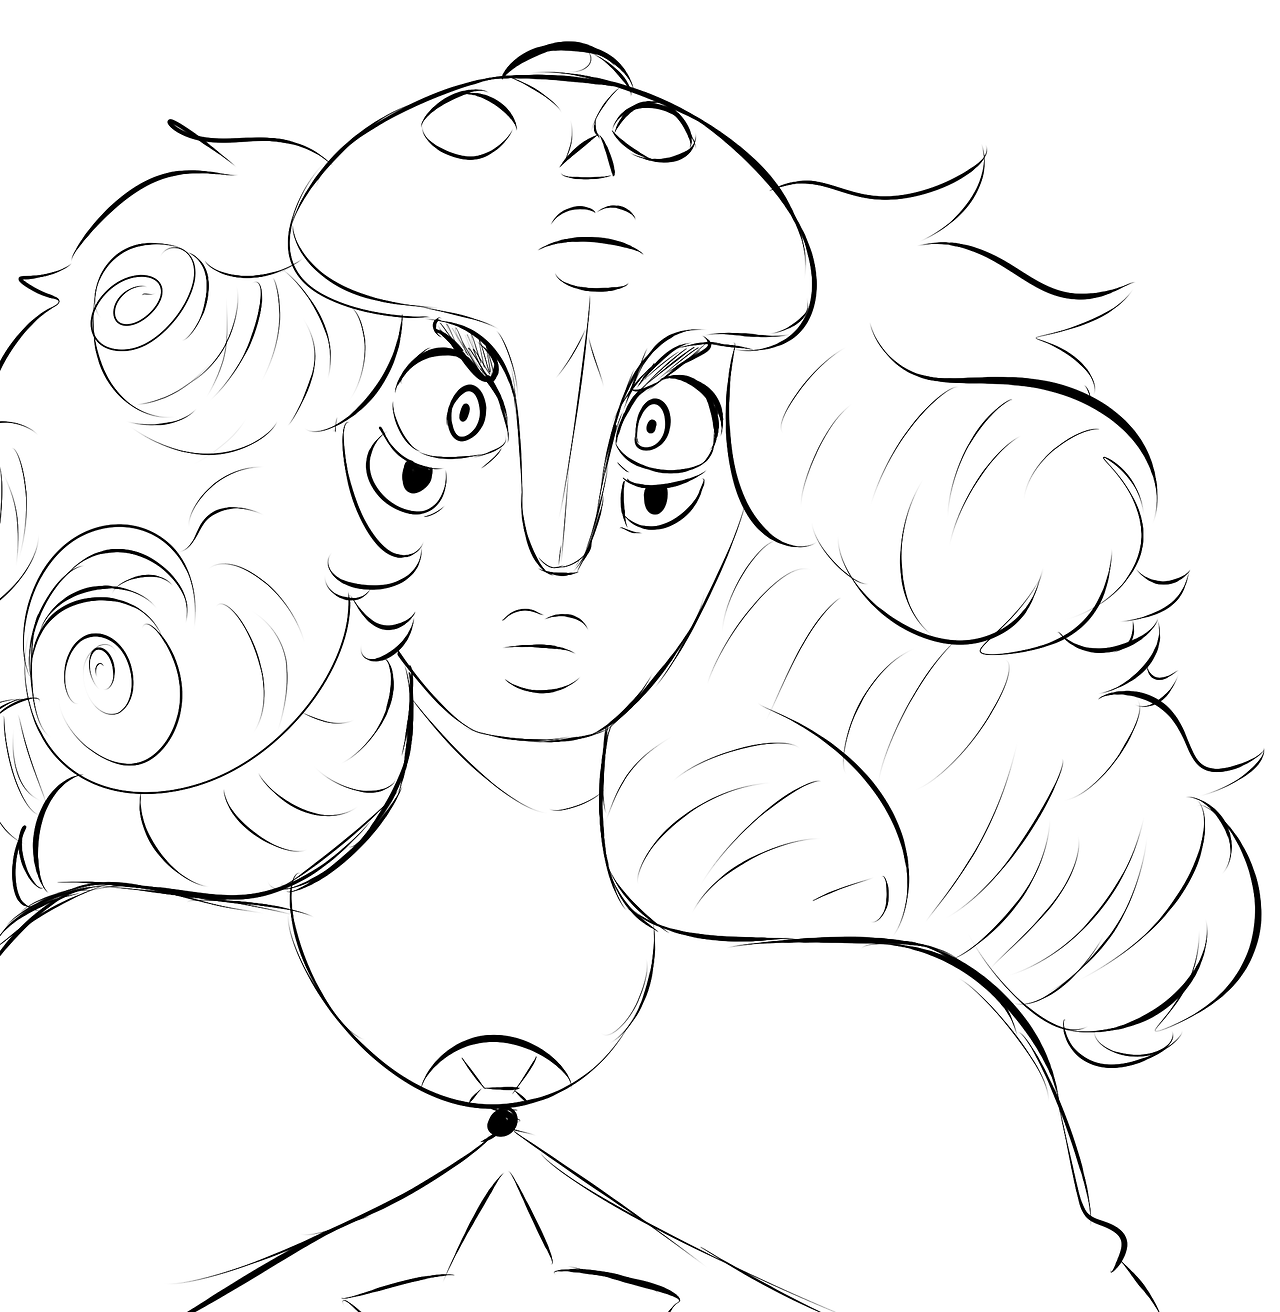 honestly I just wanted an excuse to draw YD with long hair lmao it's prolly just a pixie or smth